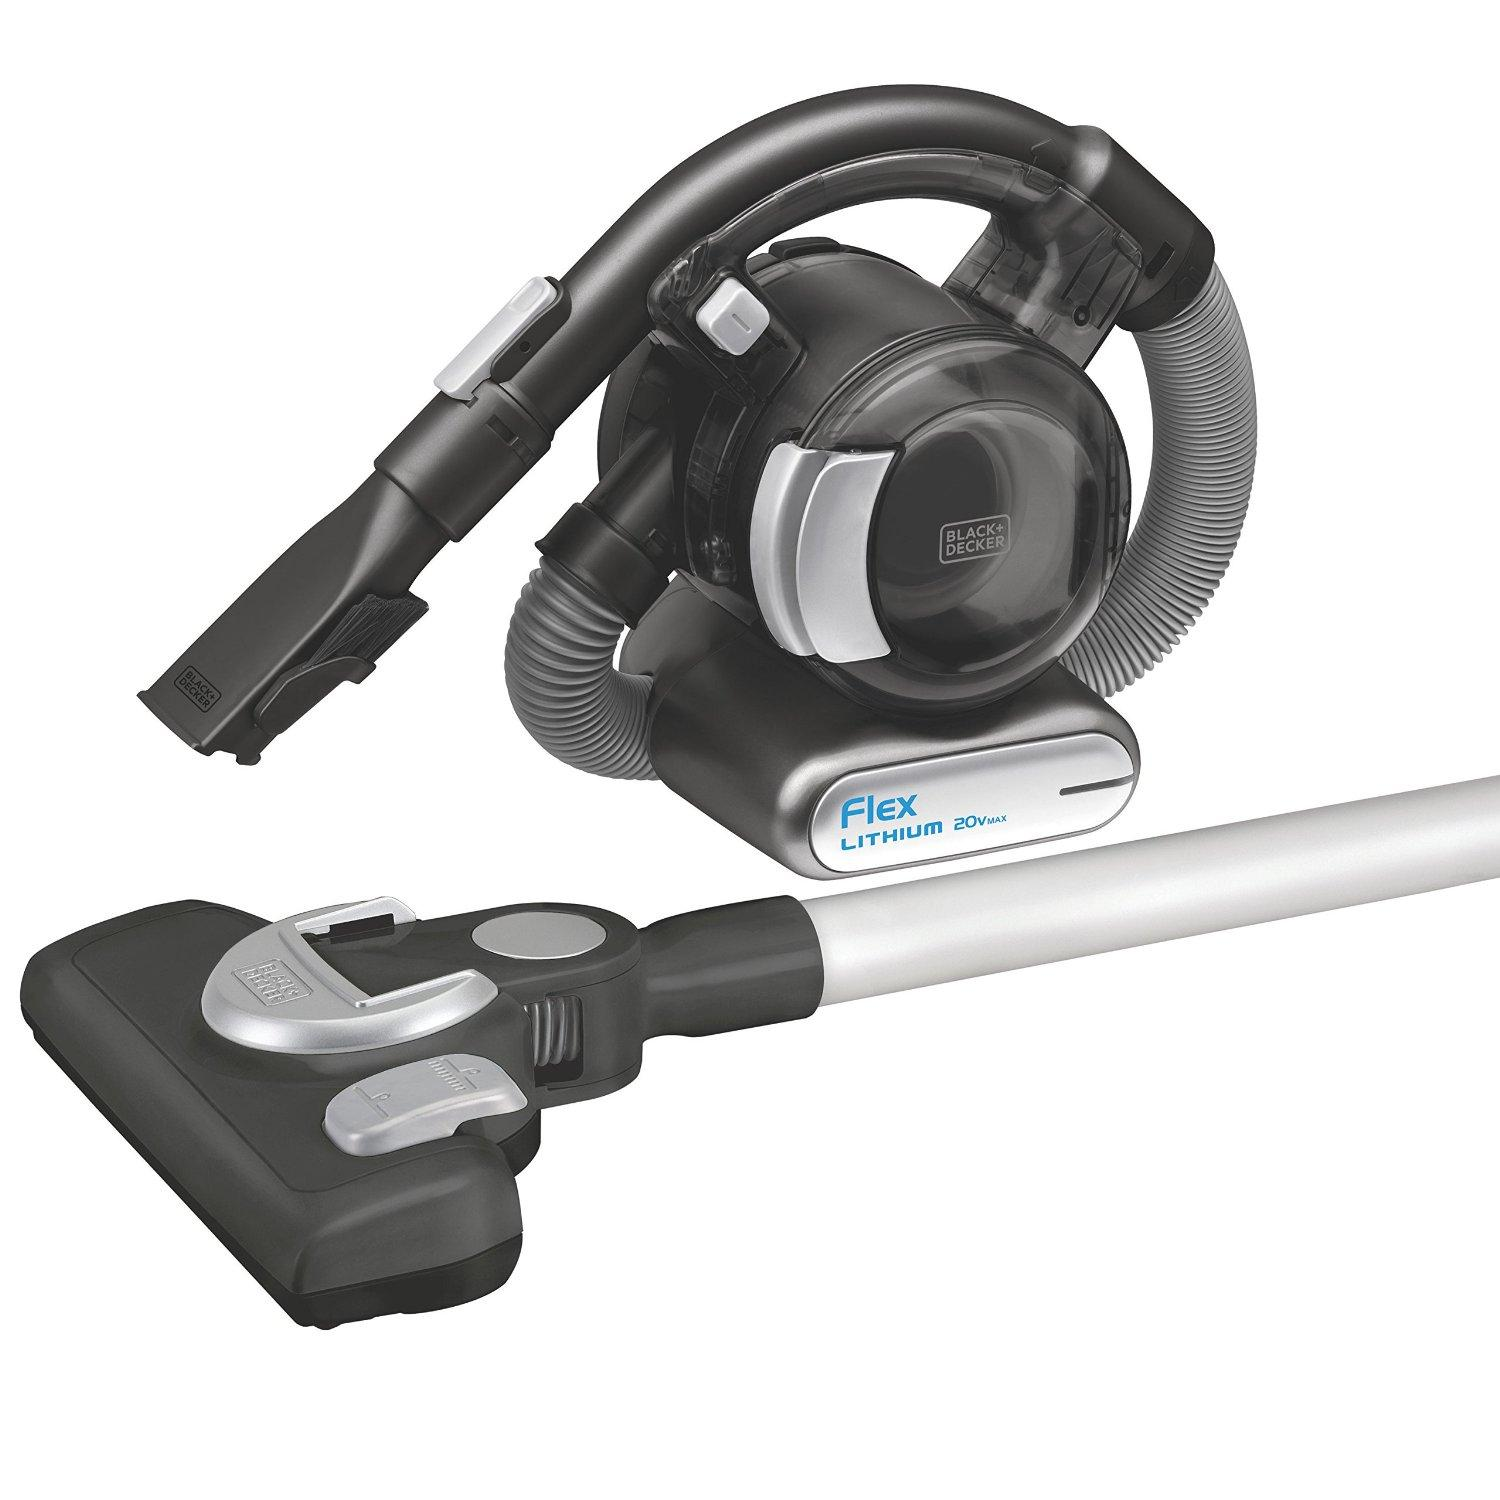 BLACK+DECKER BDH2020FLFH MAX Lithium Flex Vacuum with Stick Vacuum Floor Head and Pet Hair Brush, 20-volt